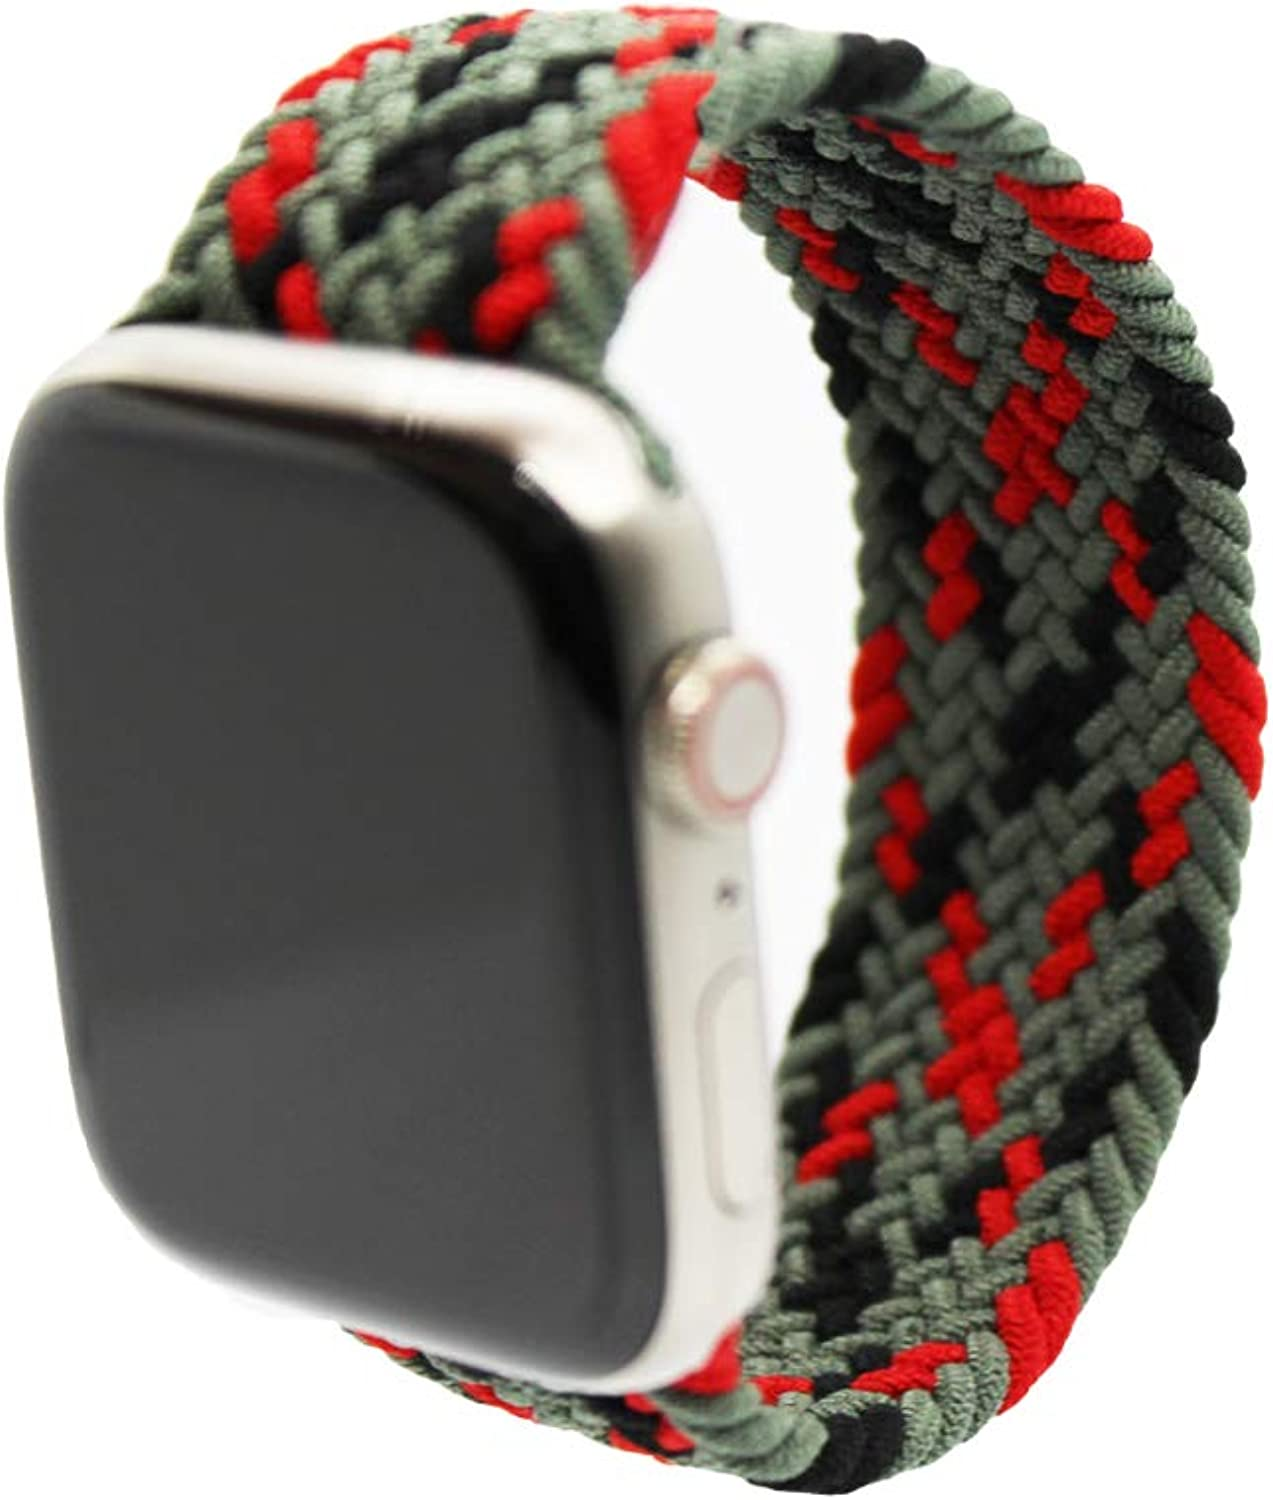 NR Solo Loop Braided Band Compatible for Apple Watch. Watch size 38mm 40mm 42mm 44mm, Soft Stretchy Braided band for Apple Watch Series 1/2/3/4/5/6/SE.